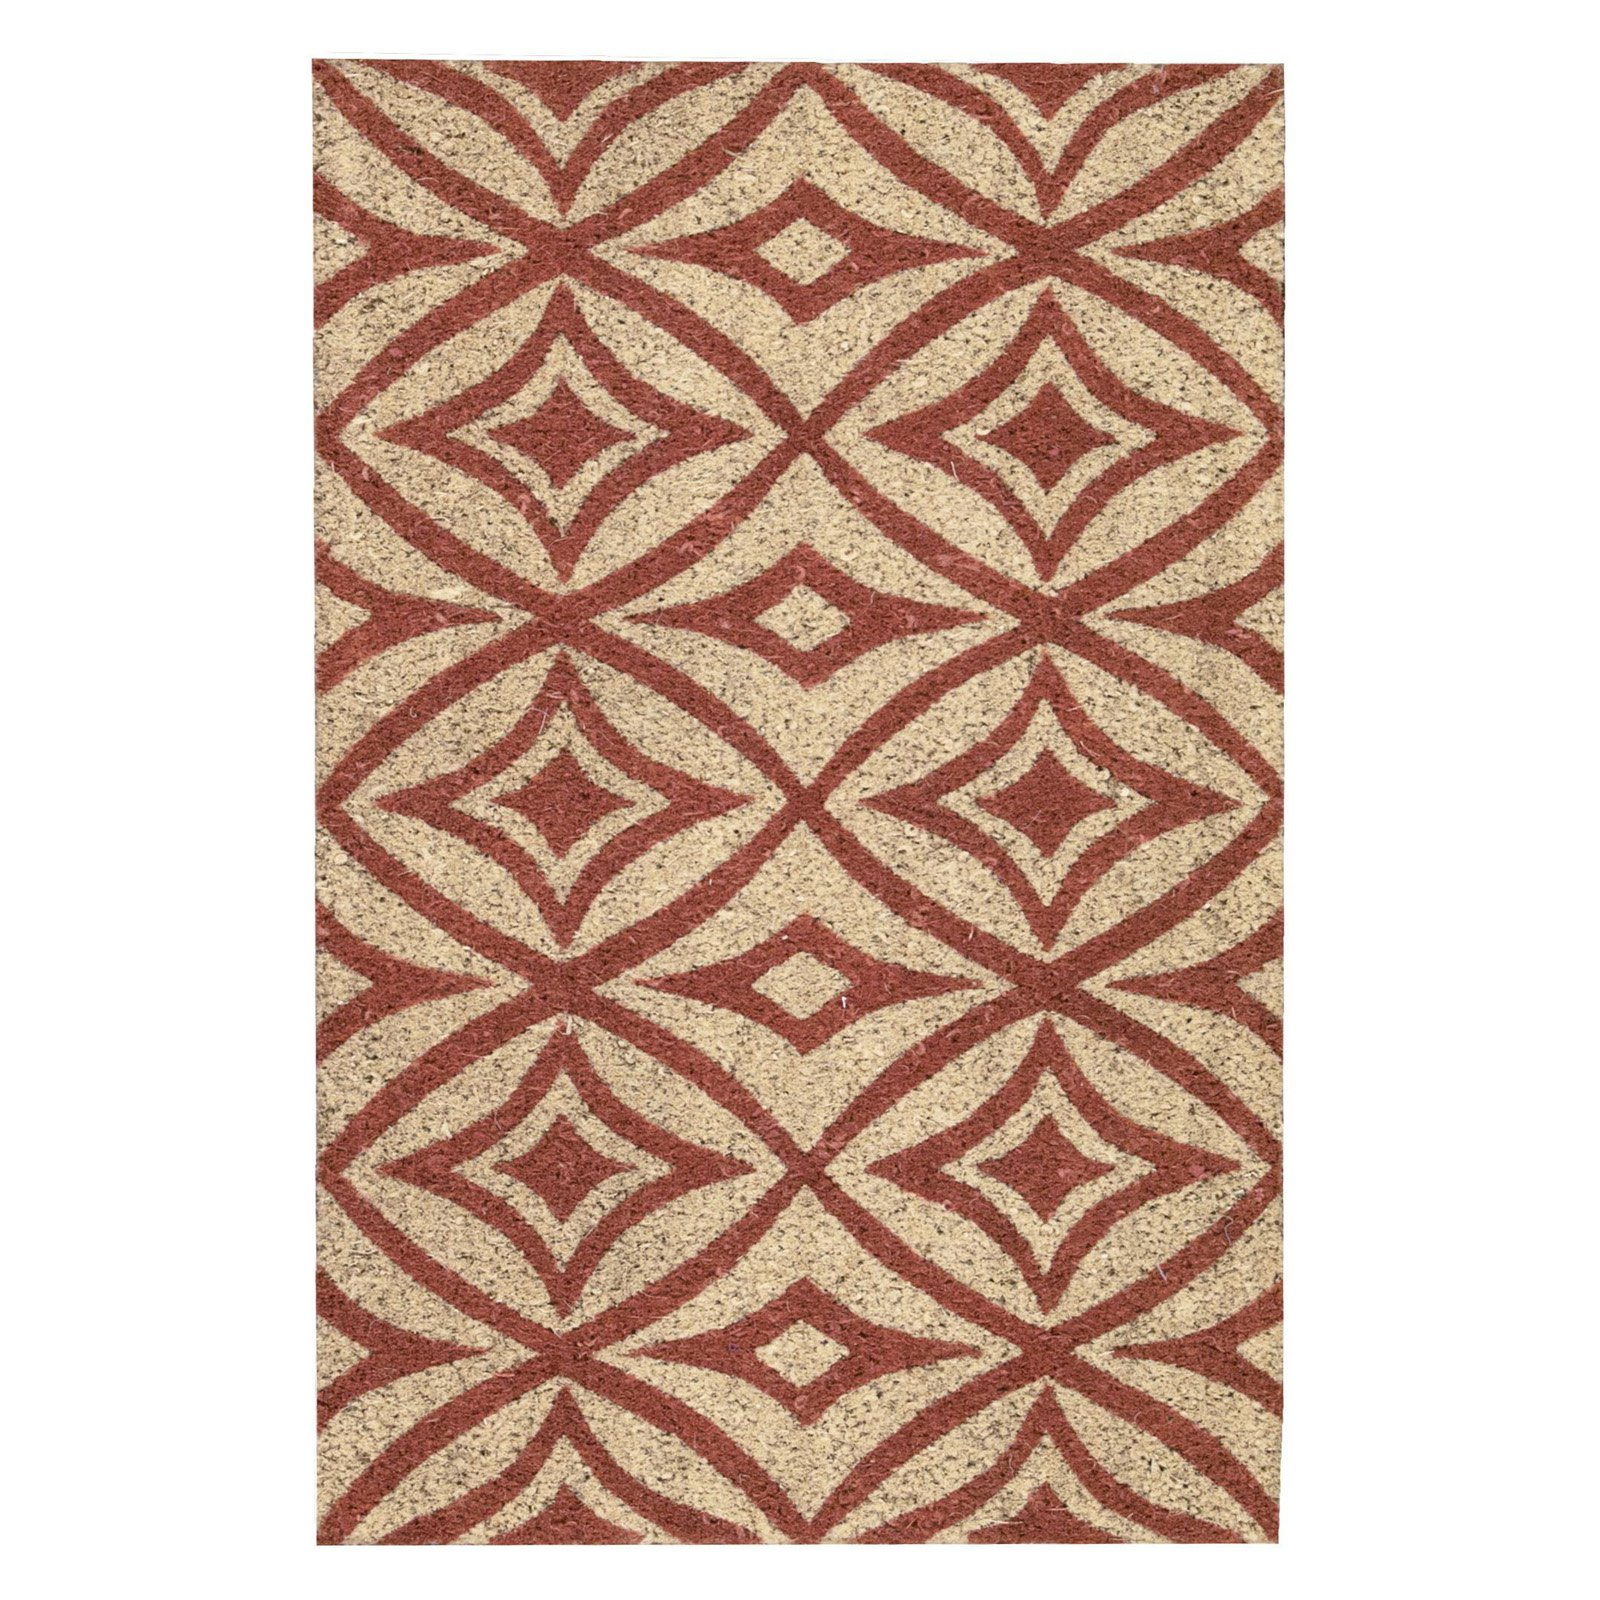 "Waverly Greetings ""Centro"" Henna Doormat by Doormats"